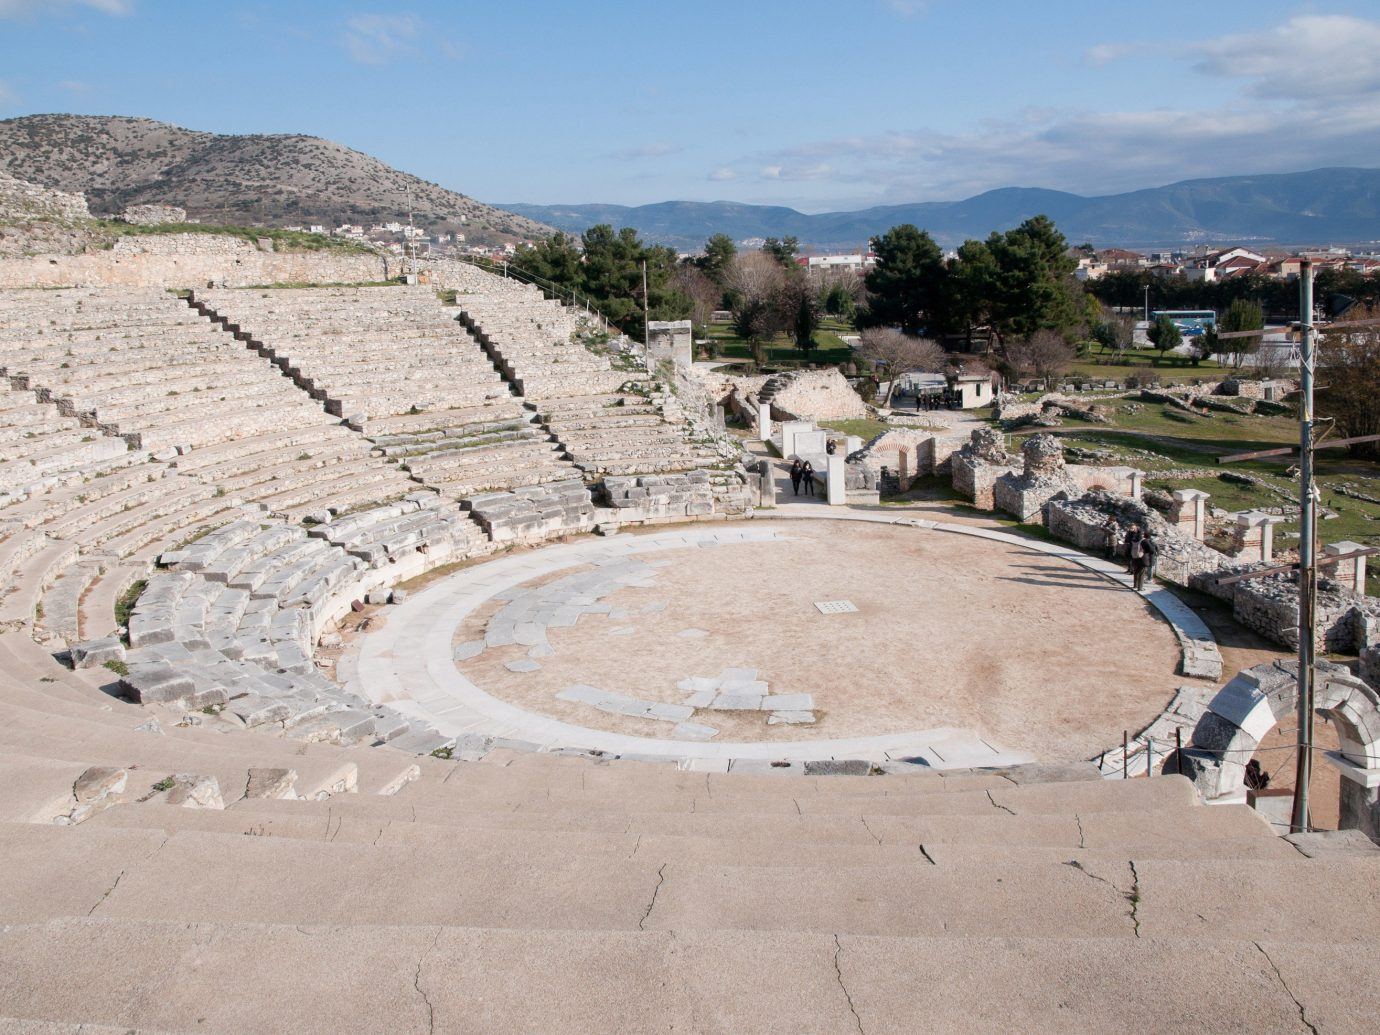 Trip Ideas ground sky outdoor amphitheatre structure sport venue mountain ancient history Ruins town square shore